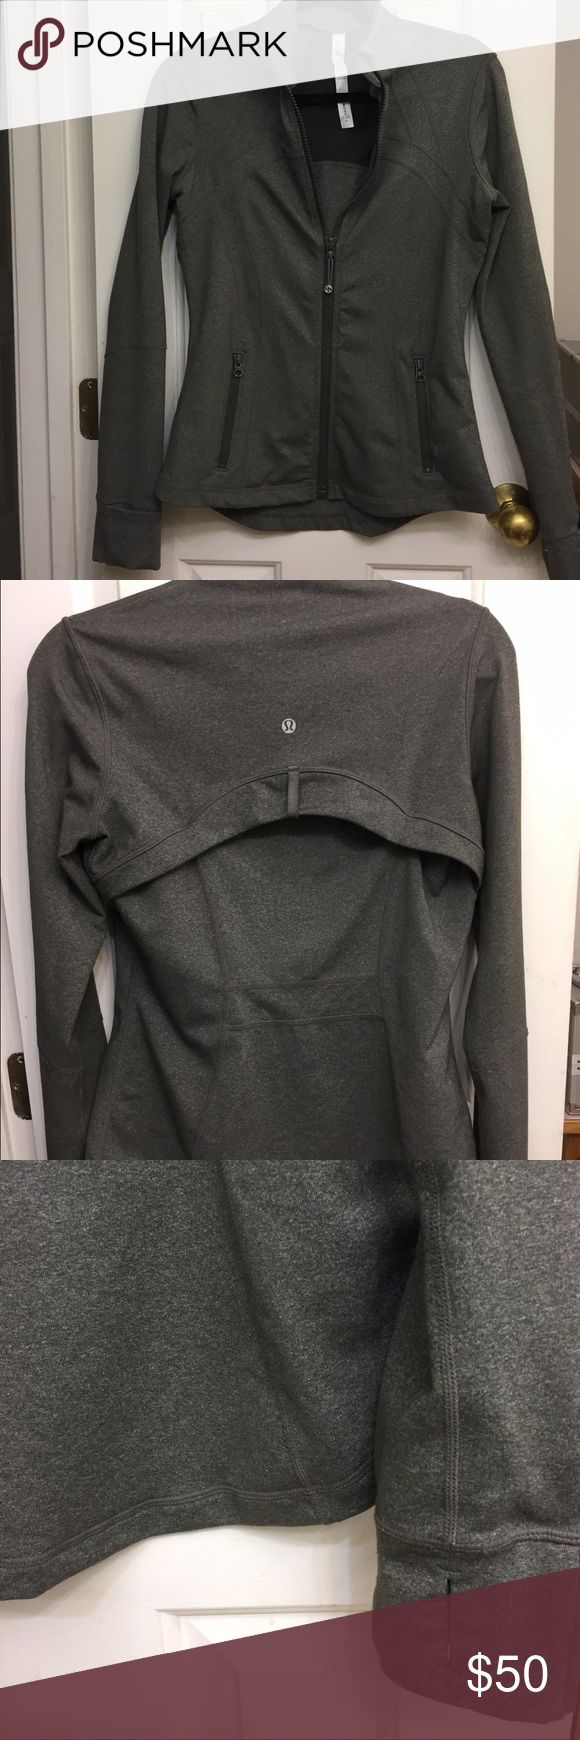 """Charcoal sage Lululemon define jacket. Excellent condition Lululemon long sleeve jacket in charcoal sage color ( smokey sage? Lol) very slight pilling in underarm area- hard to see, I only noticed when I was inspecting the seams to measure length. Zipper garage at chin and thumb holes in cuffs. Only visible sign of wear is slight wear on paint of zippers on pockets. Back flap covers racer back vent. Sleeve 27"""", length 25"""", 18"""" chest. Quite stretchy. lululemon athletica Tops Sweatshirts…"""